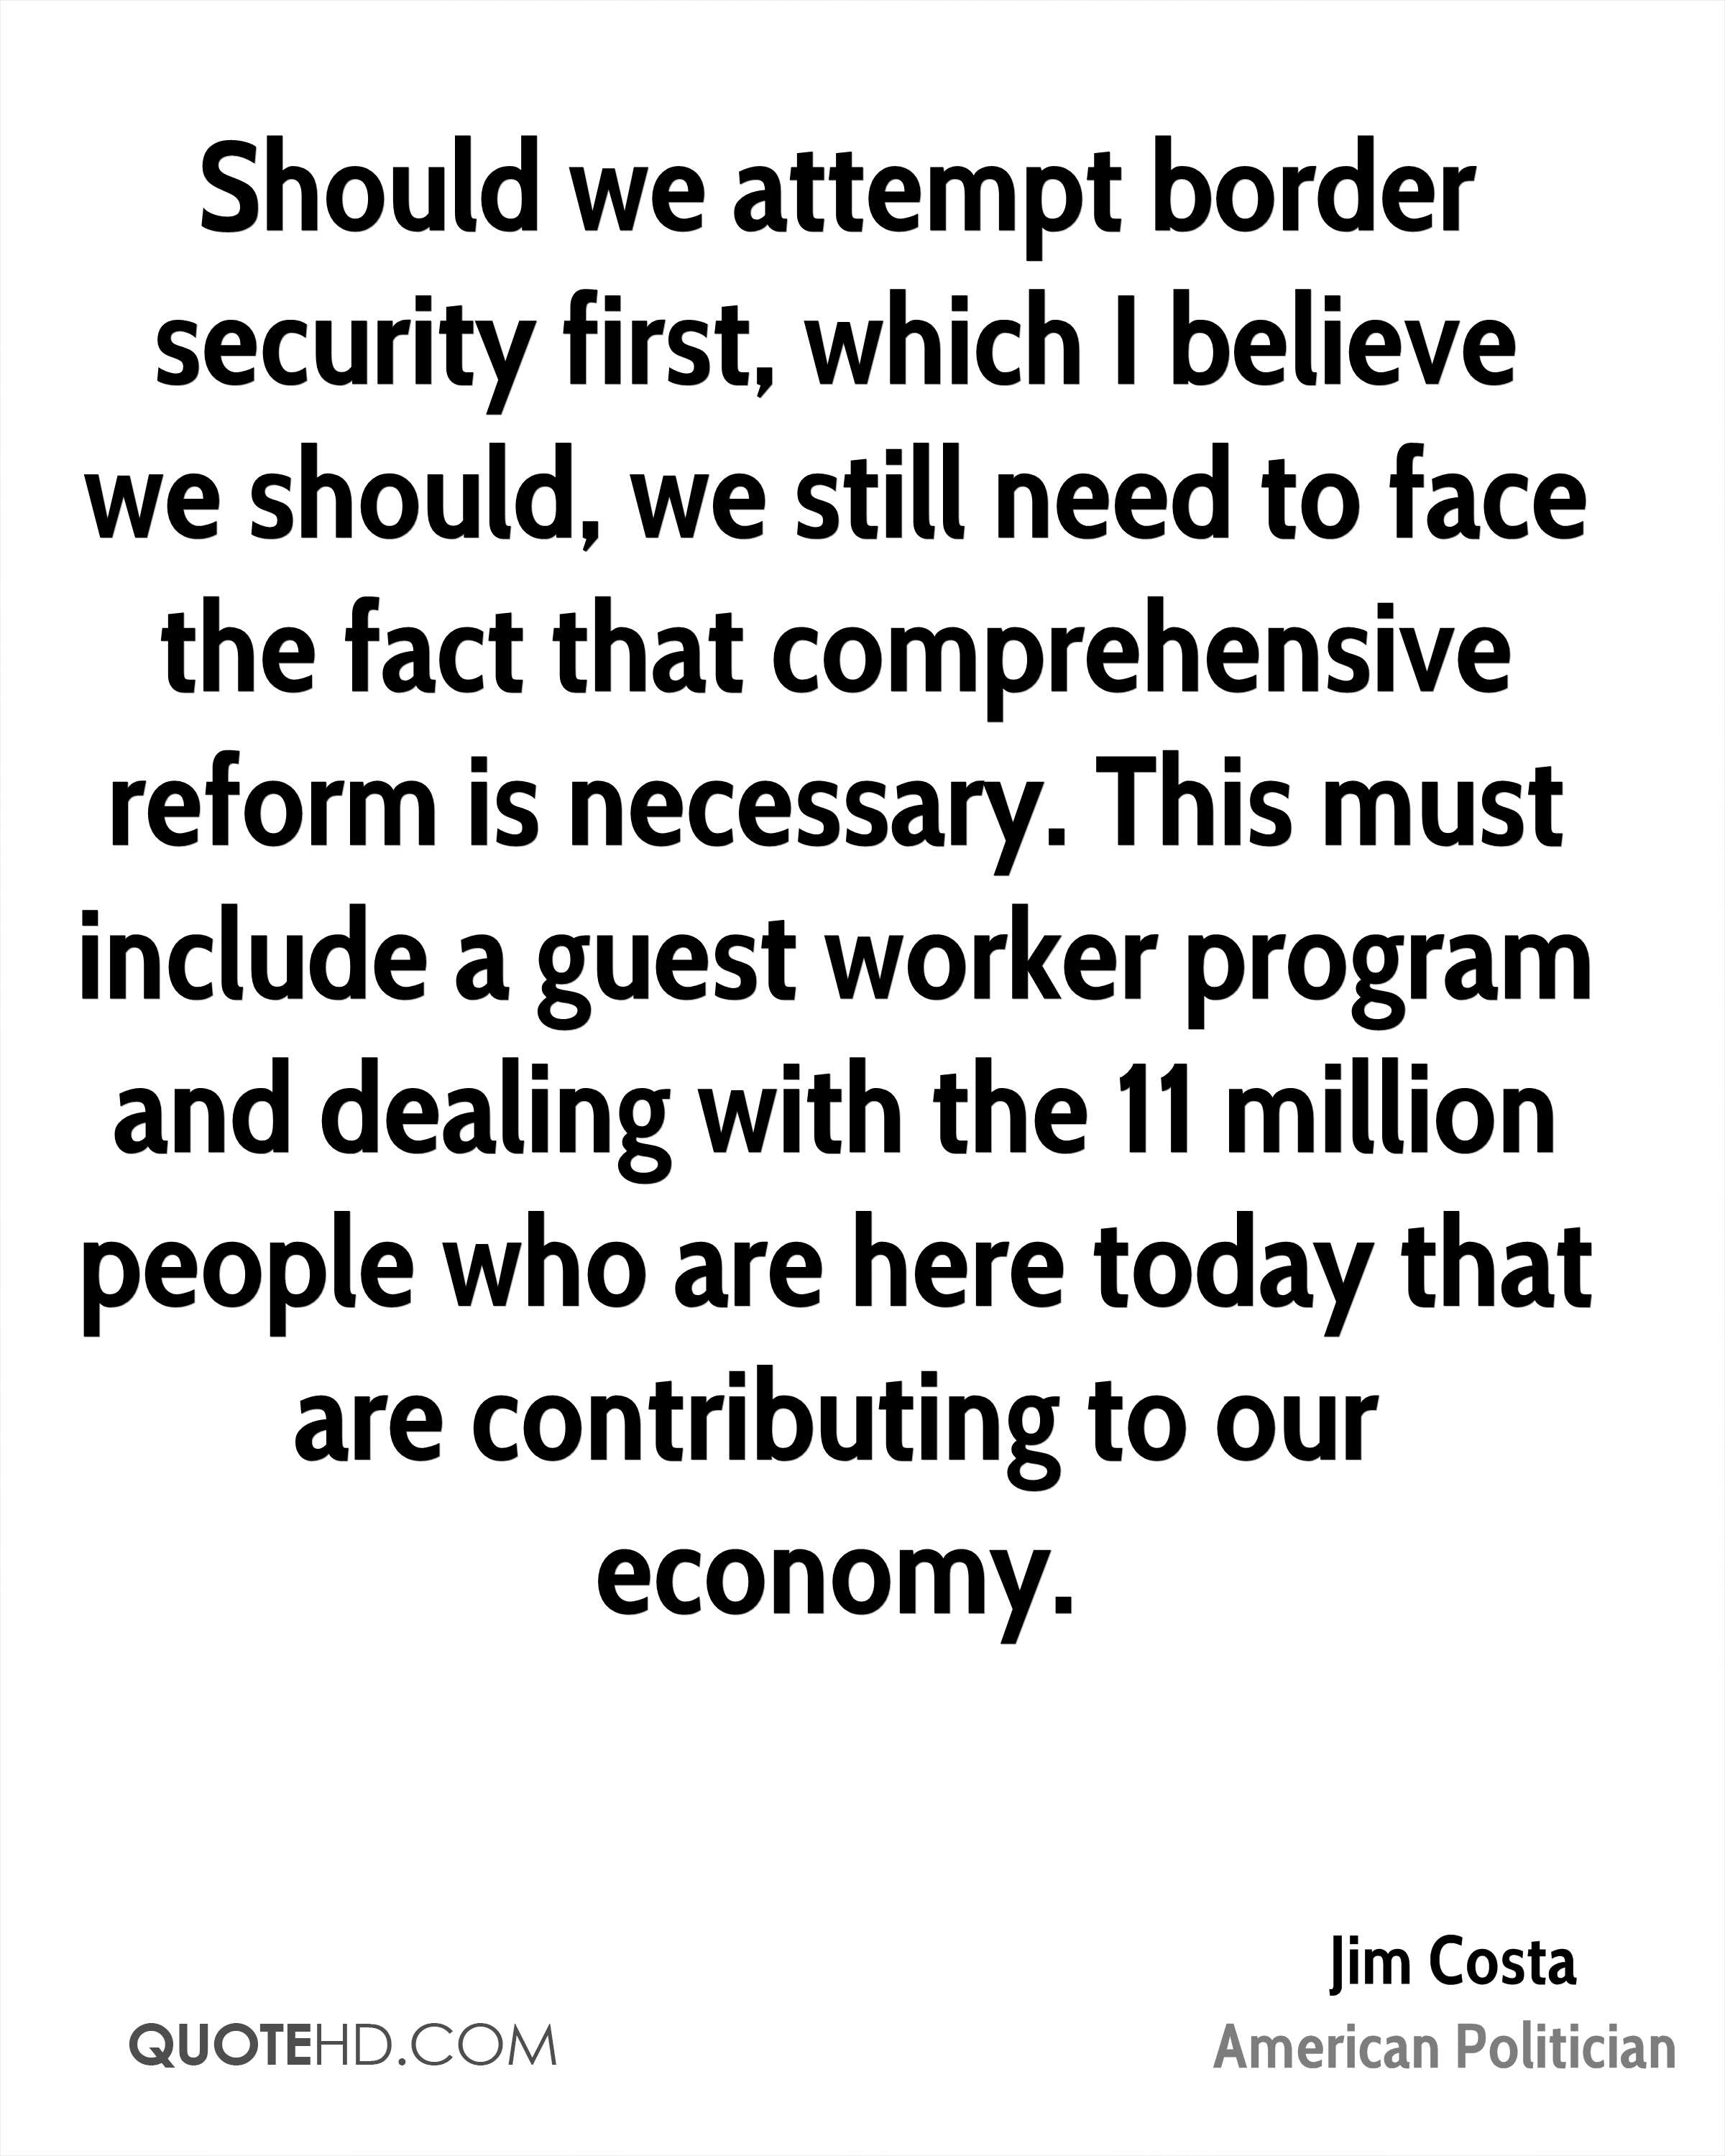 Should we attempt border security first, which I believe we should, we still need to face the fact that comprehensive reform is necessary. This must include a guest worker program and dealing with the 11 million people who are here today that are contributing to our economy.